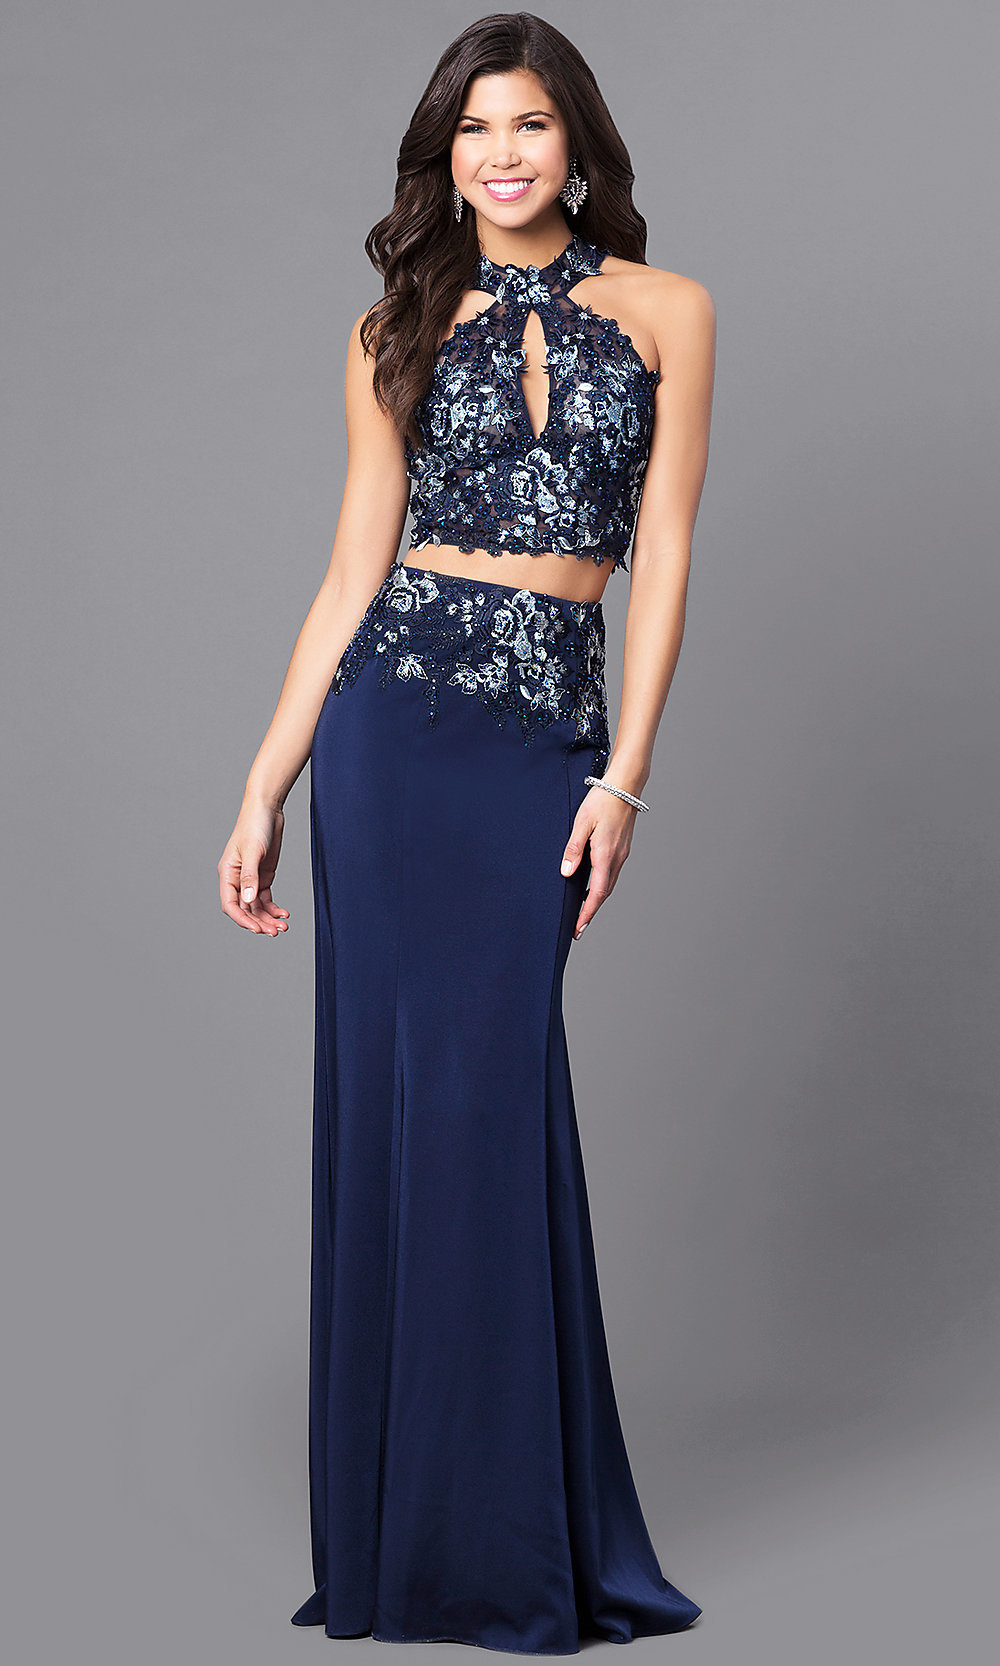 Prom dresses short in front long in back blue